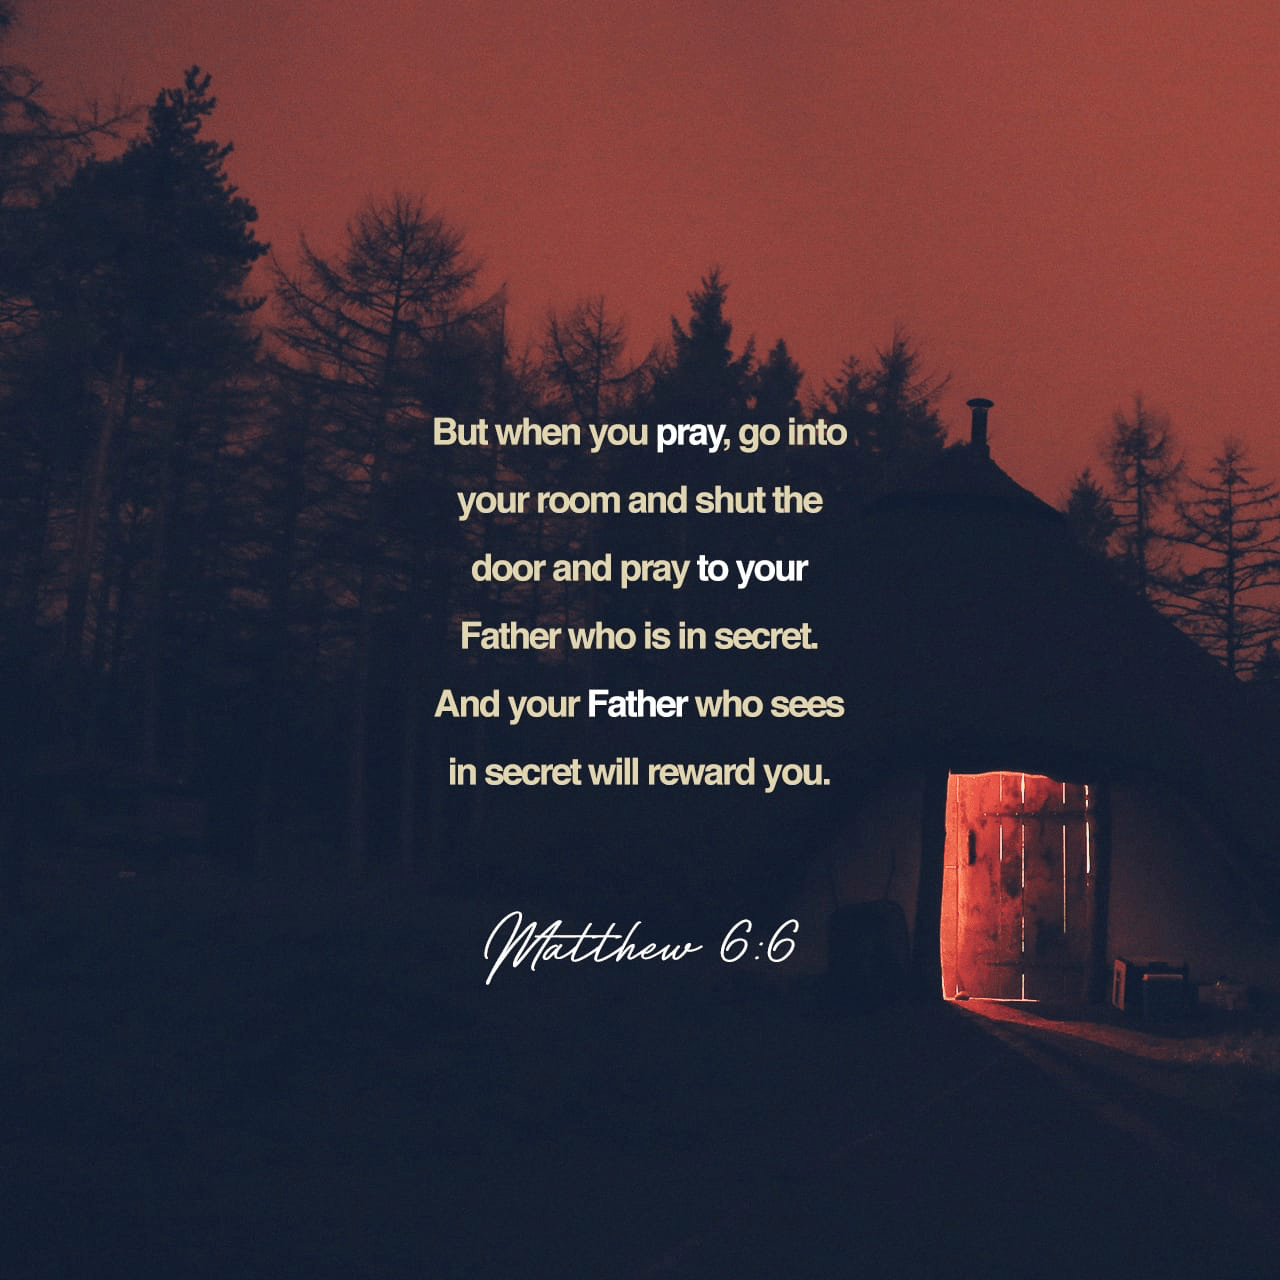 """VOTD February 20 - """"""""When you pray, you are not to be like the hypocrites; for they love to stand and pray in the synagogues and on the street corners so that they may be seen by men. Truly I say to you, they have their reward in full. But you, when you pray, go into your inner room, close your door and pray to your Father who is in secret, and your Father who sees what is done in secret will reward you."""" Matthew 6:5-6 NASB"""